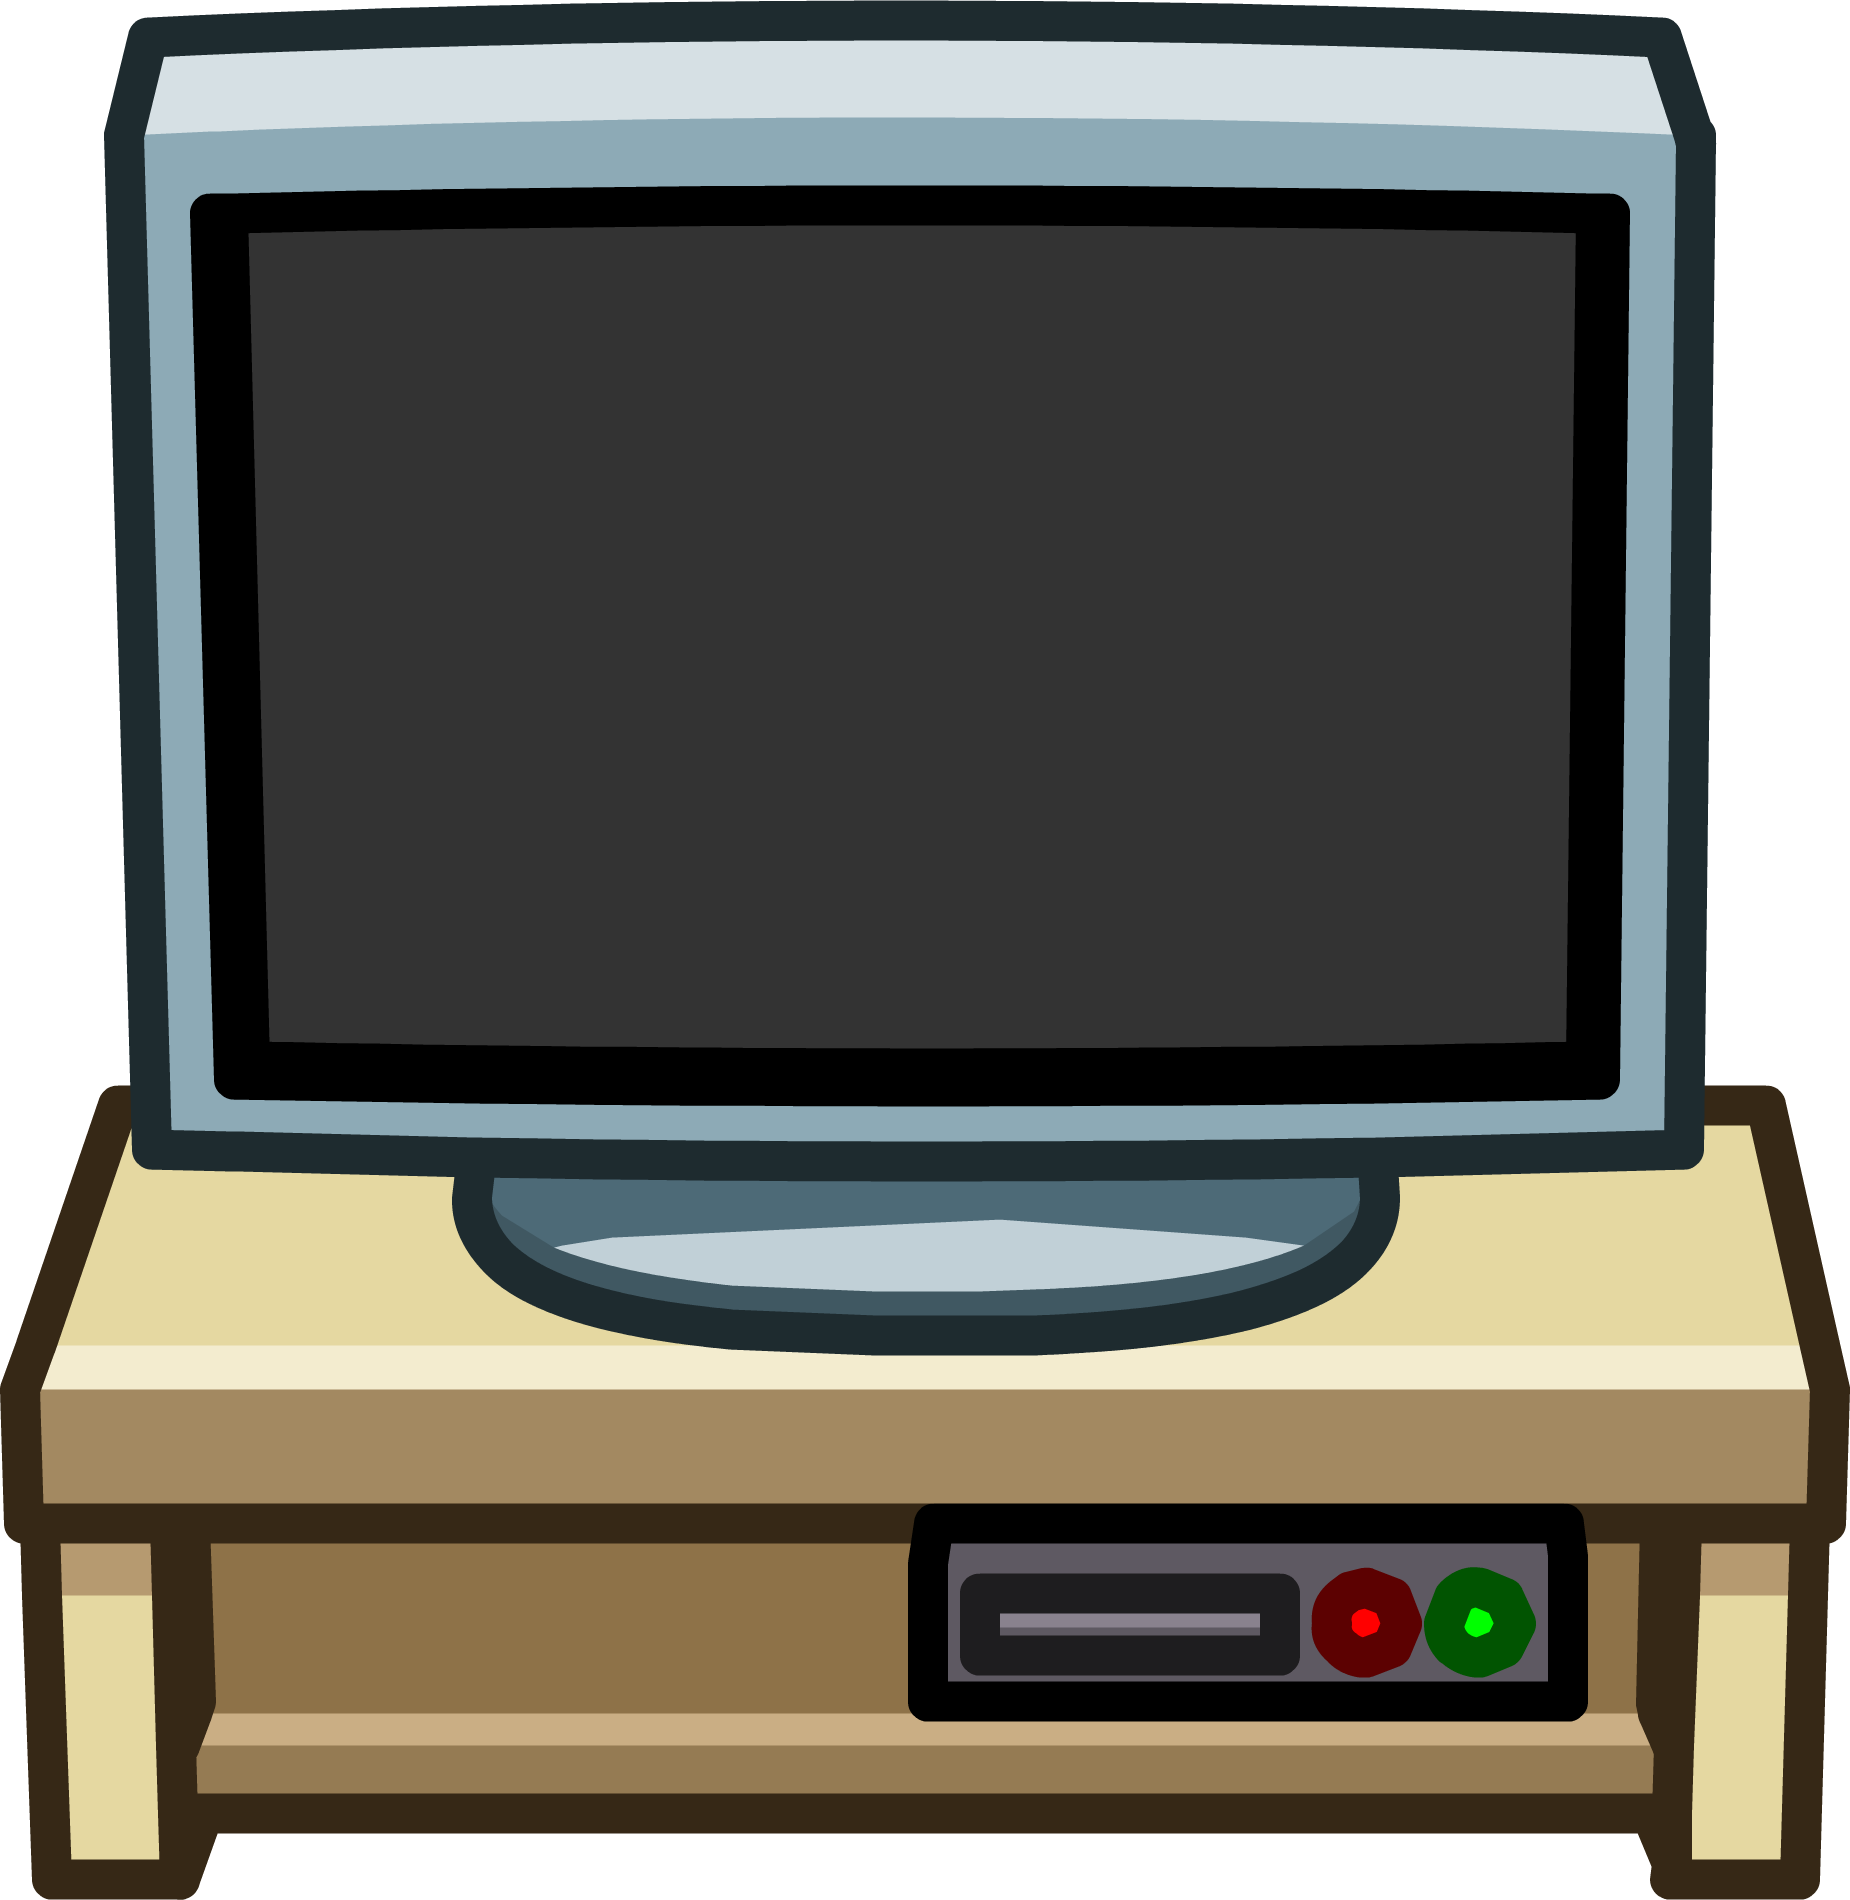 Image furniture icons png. Electronics clipart electronic media